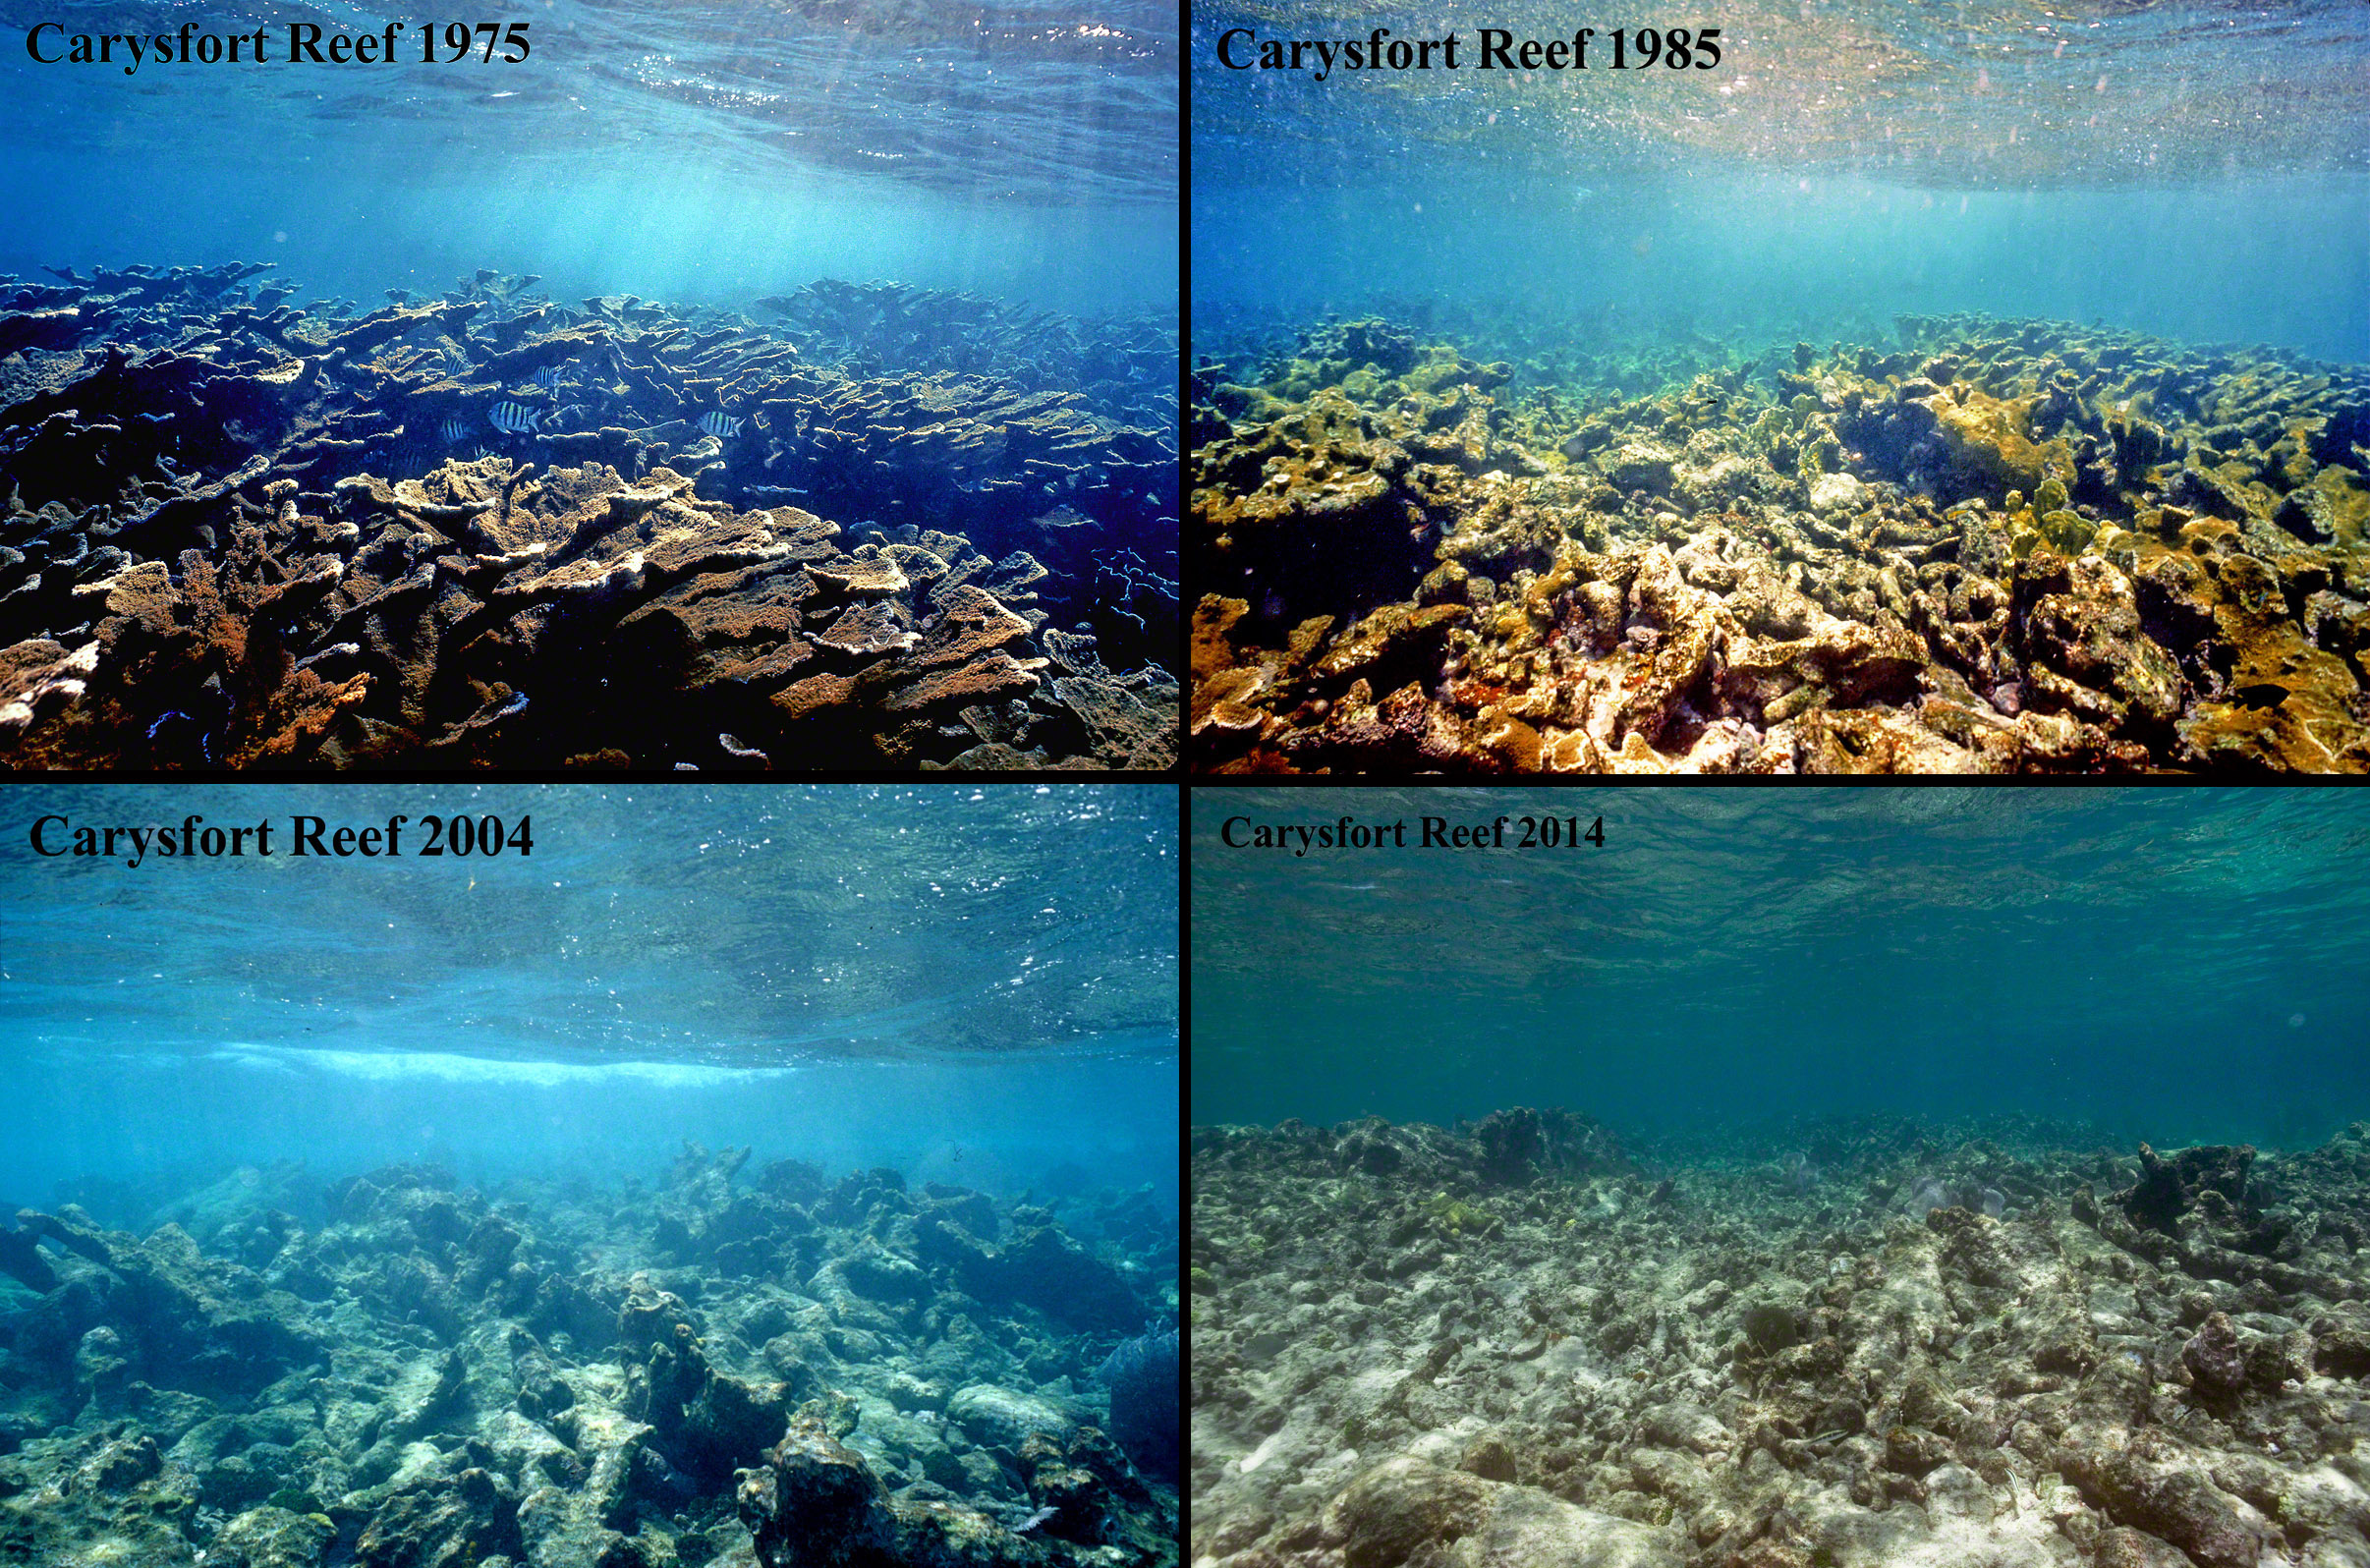 Carysfort Reef 1975 to 2014